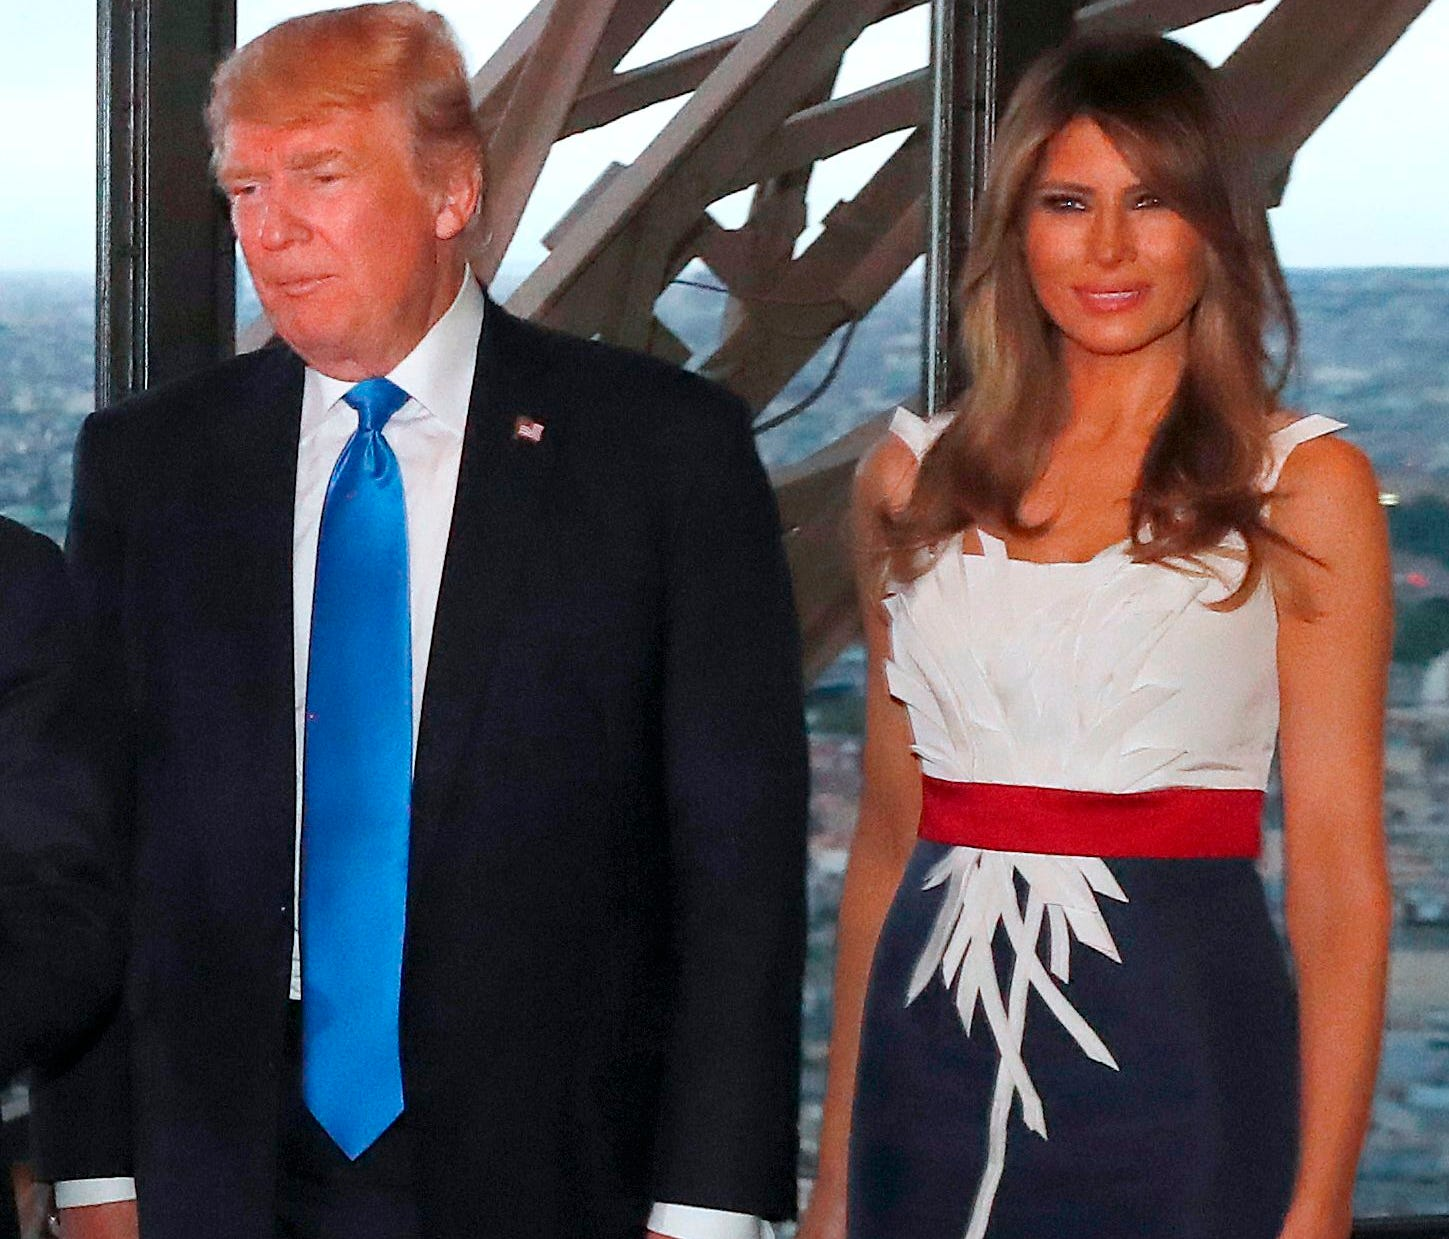 First lady Melania Trump and President Trump ate dinner with the French President and his wife at Le Jules Verne Restaurant on the Eiffel Tower in Paris, on July 13, 2017, part of a a two-day visit.